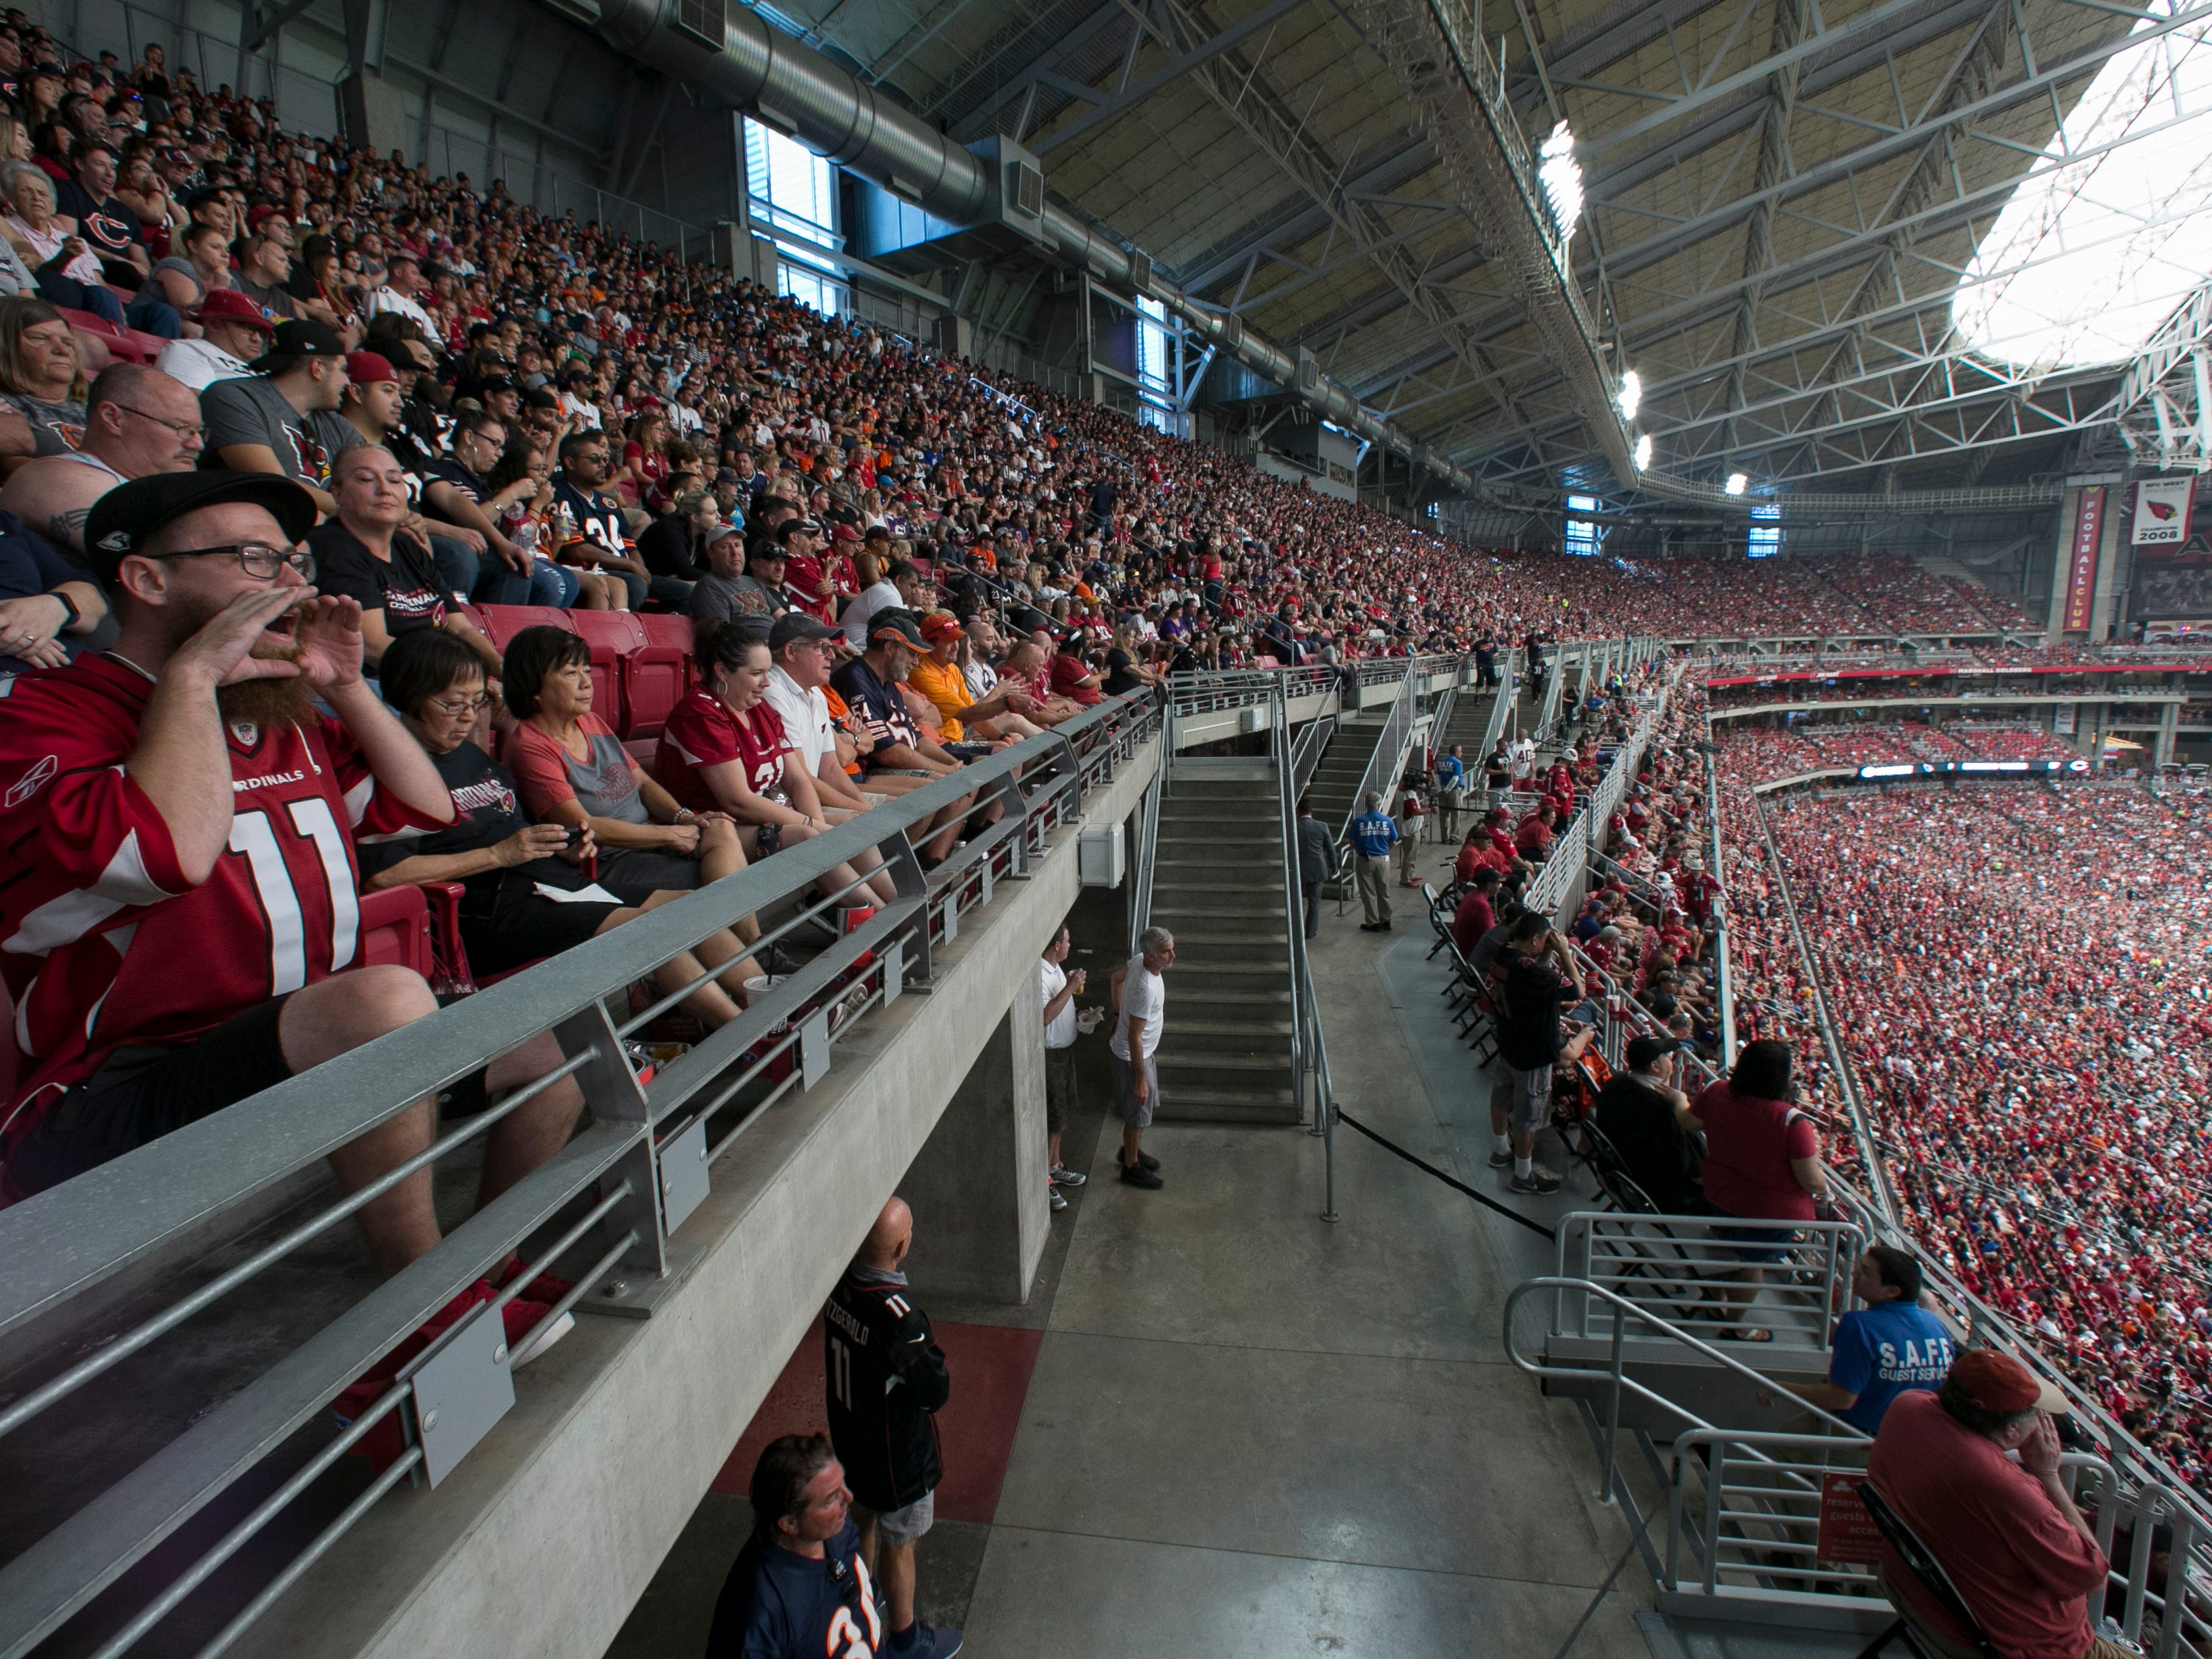 Football fans watch the Cardinals and Bears play at State Farm Stadium in Glendale, Ariz. on Sun. Sep. 23, 2018.